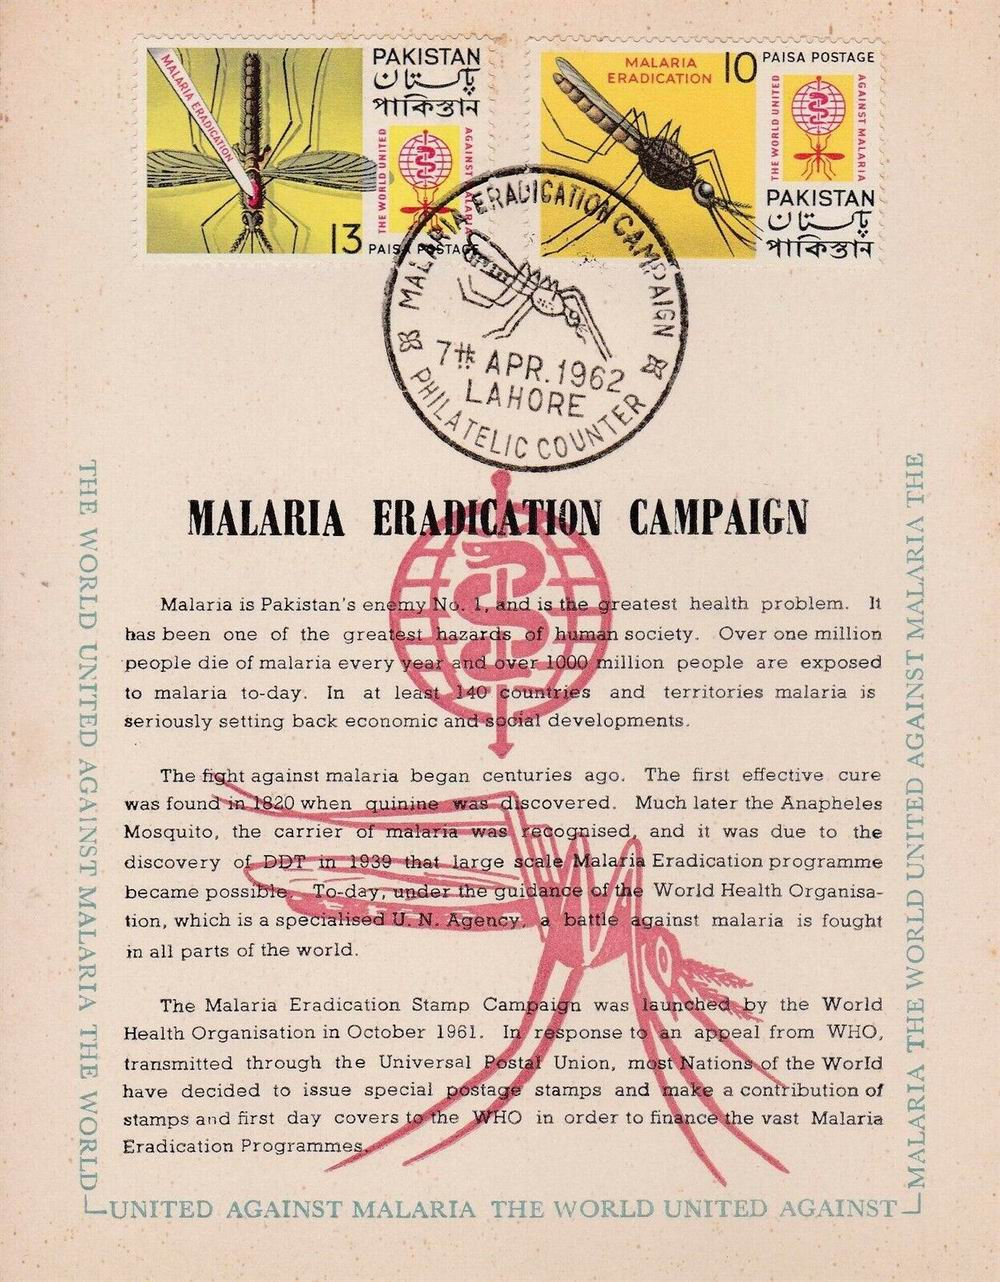 Pakistan Spl First Day Card 1962 & Stamps Fight Against Malaria